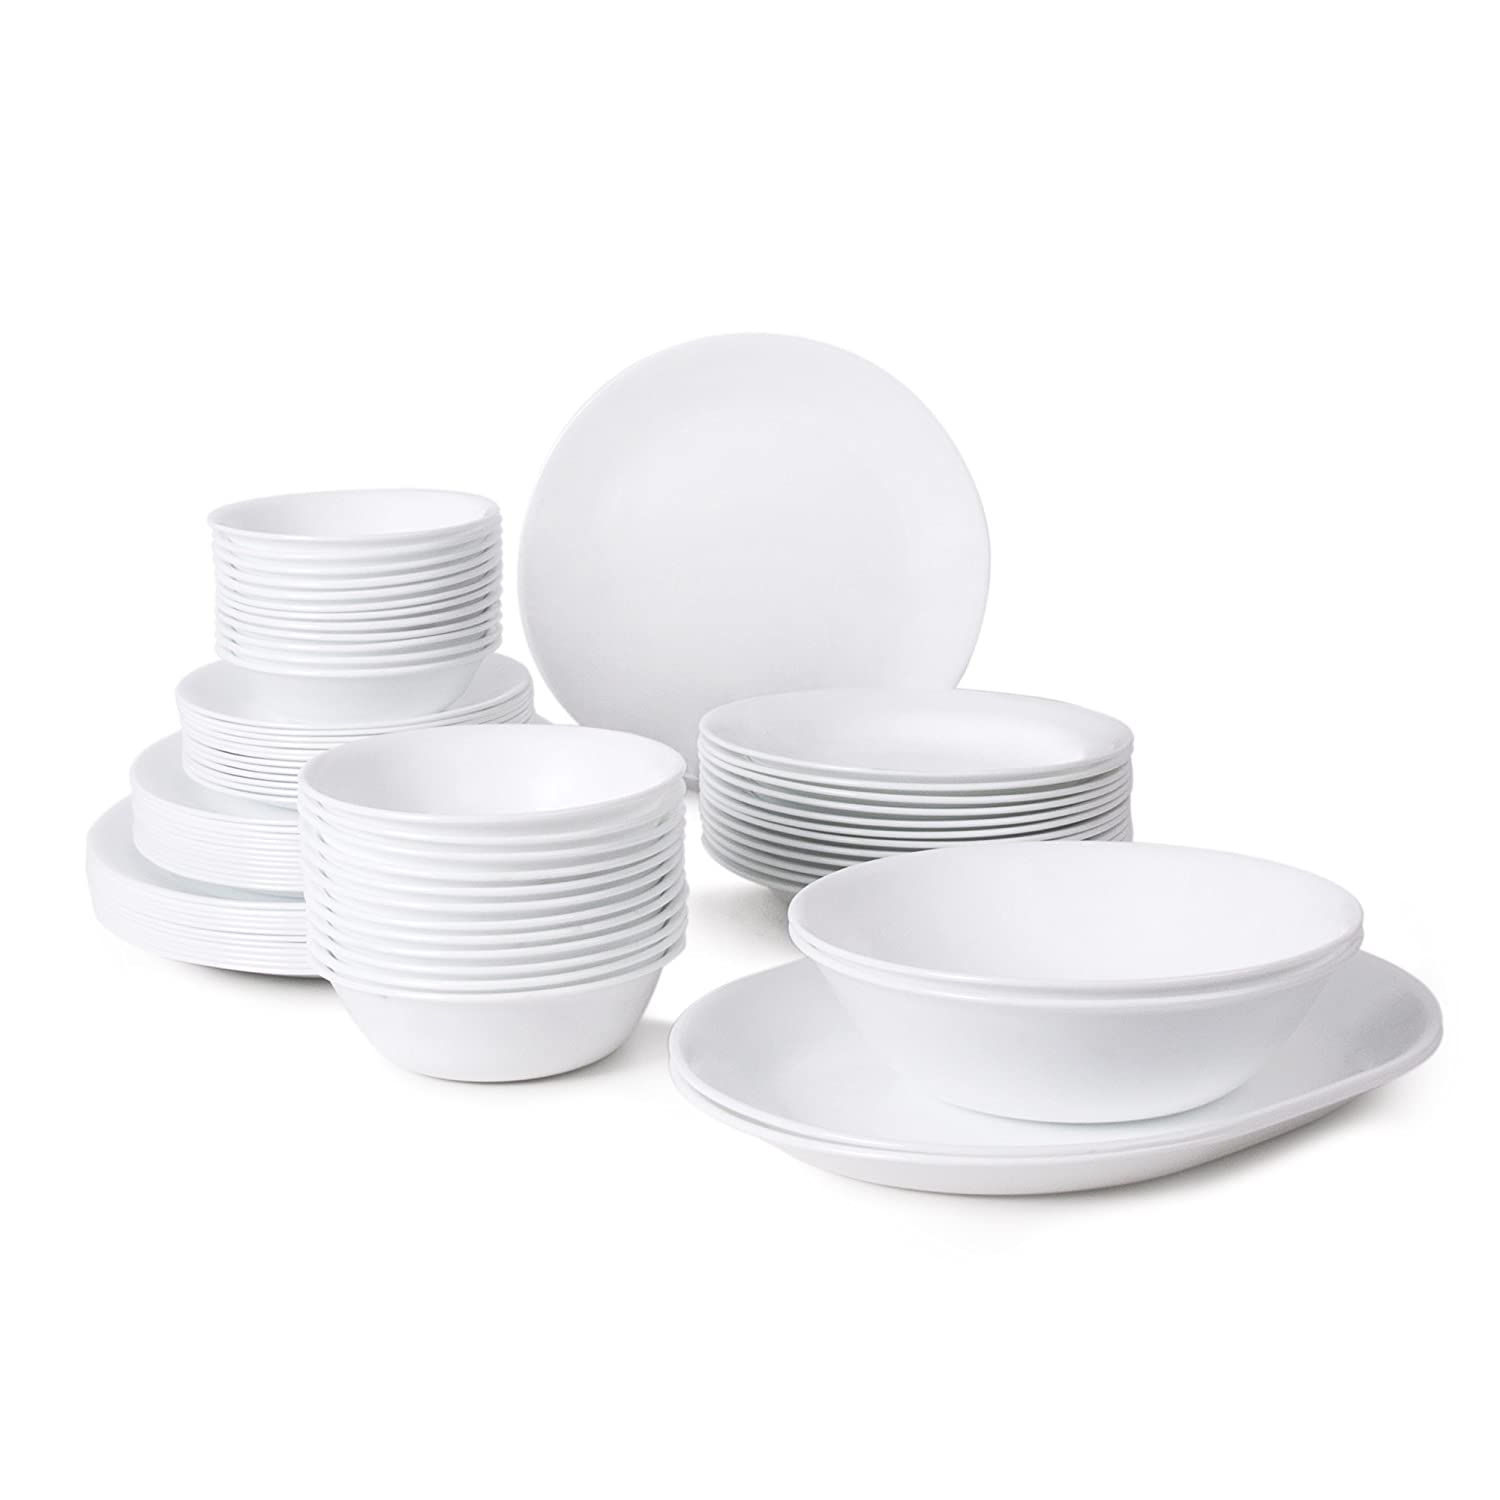 in dishes corelle amazon india livingware buy katori dp cottages country cottage of online low set prices at